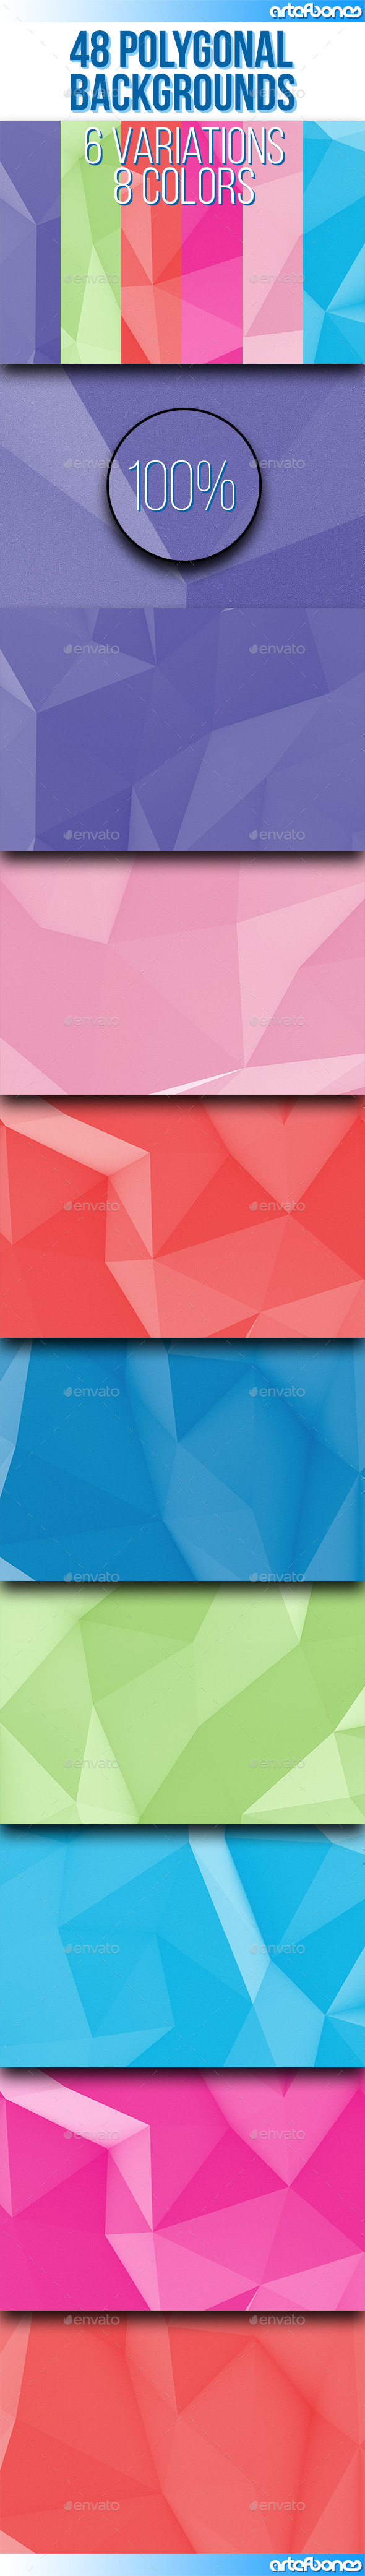 GraphicRiver 48 Polygonal Backgrounds Vol.5 9725871